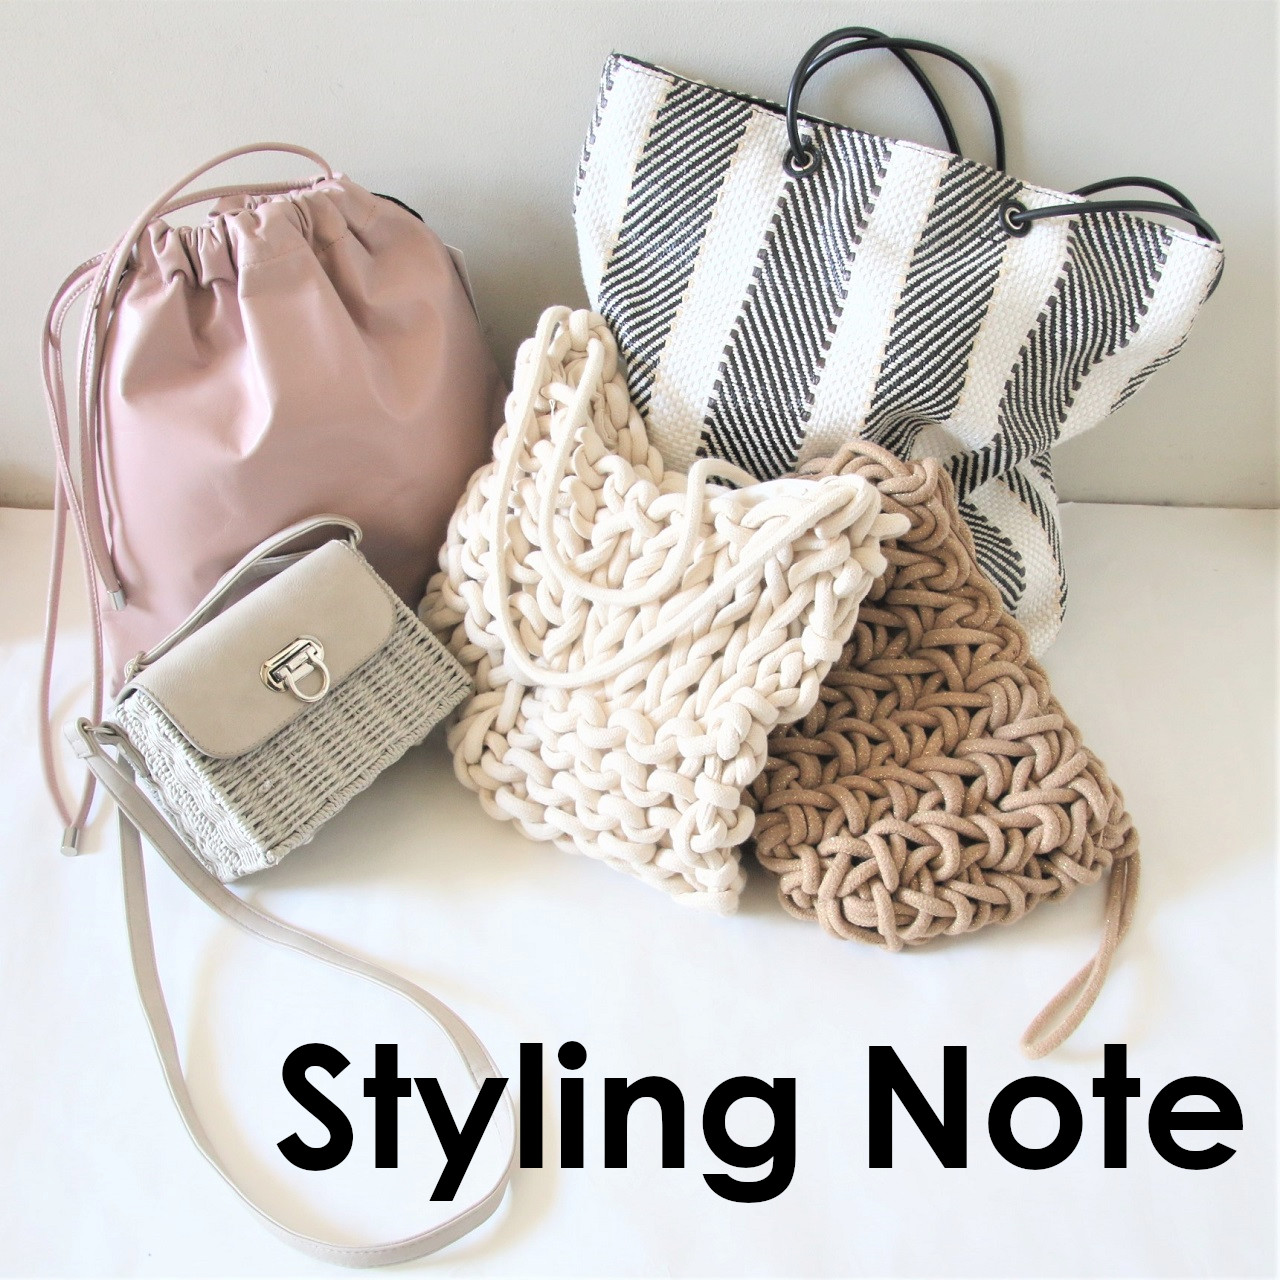 Styling Note #21